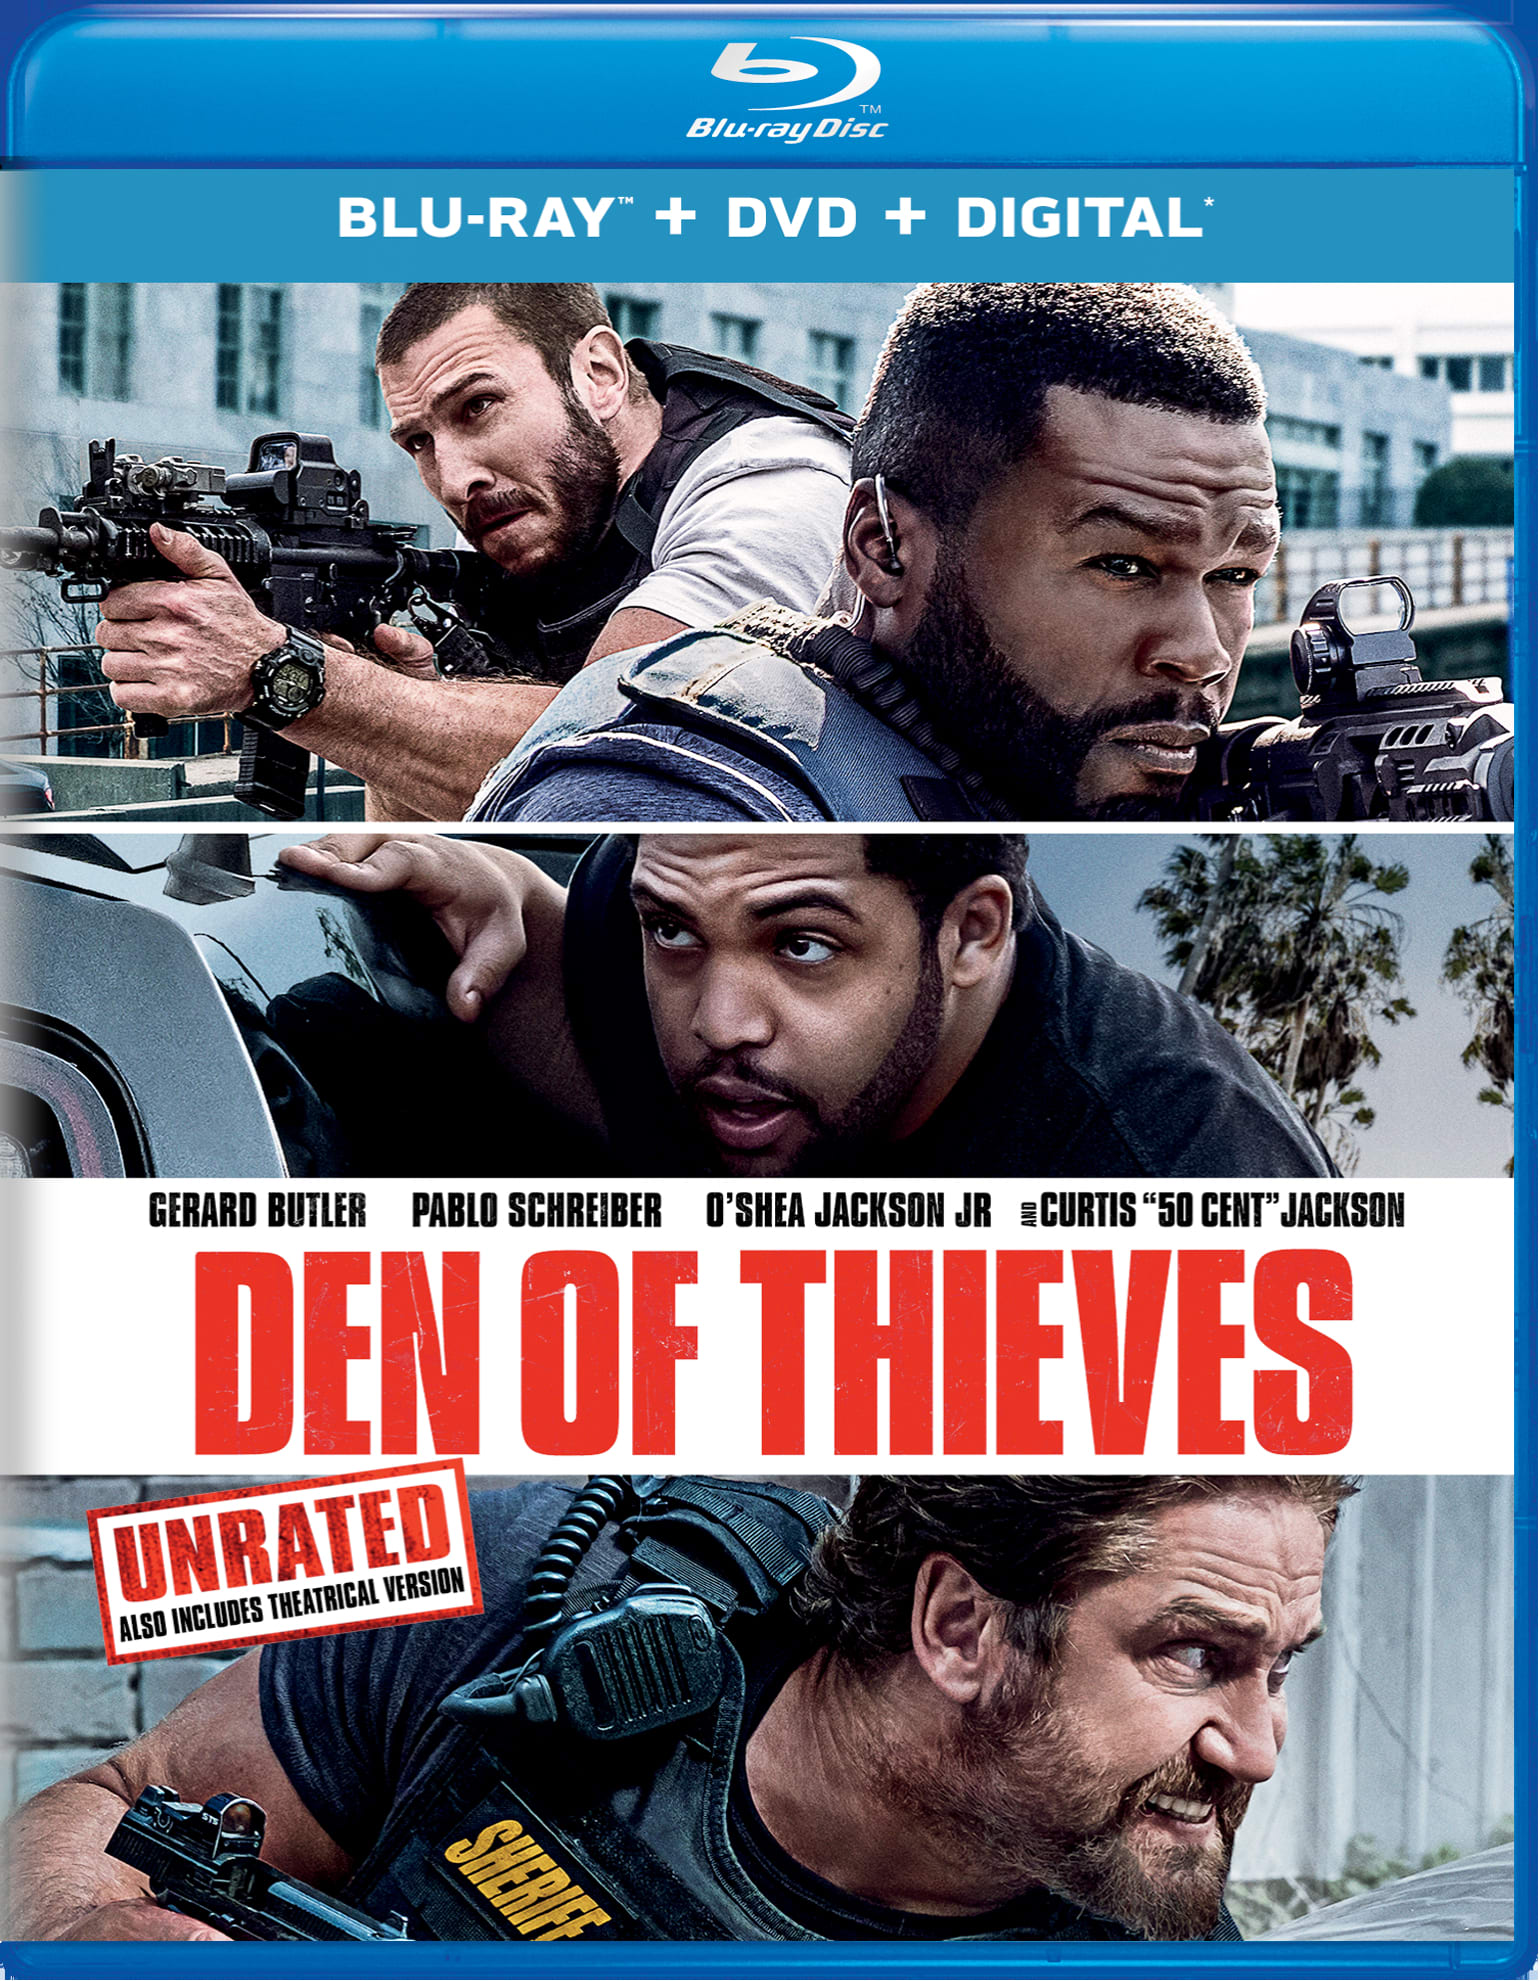 Den of Thieves (Unrated Edition) [Blu-ray]